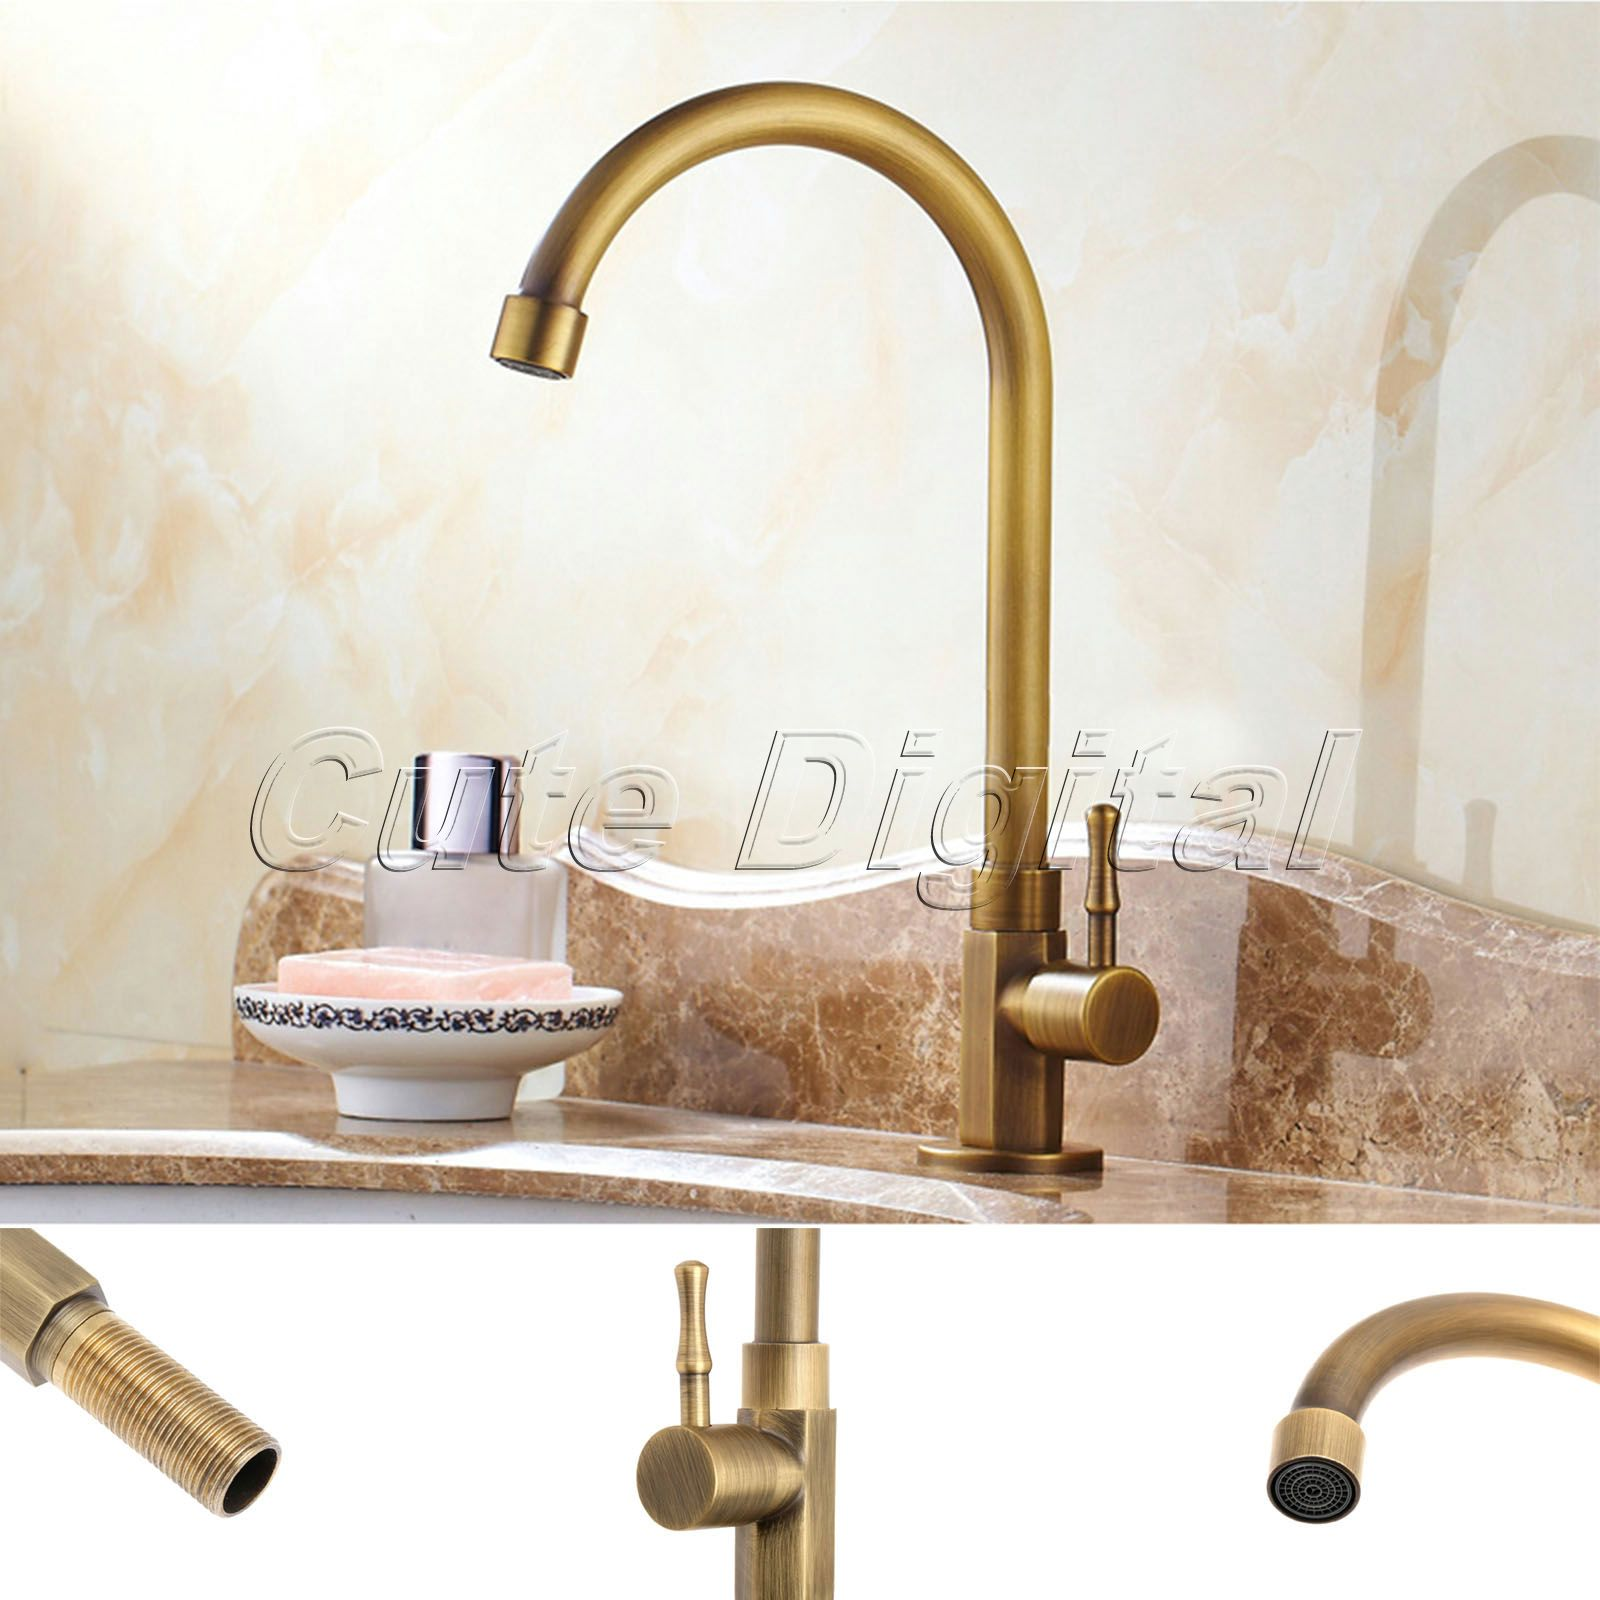 Aliexpress com   Buy Antique Brass Luxury Bathroom Sink Faucet Single  Handle Swivel Spout Kitchen Faucets Vessel Sink Mixer Water Tap Basin  Faucets from. Aliexpress com   Buy Antique Brass Luxury Bathroom Sink Faucet